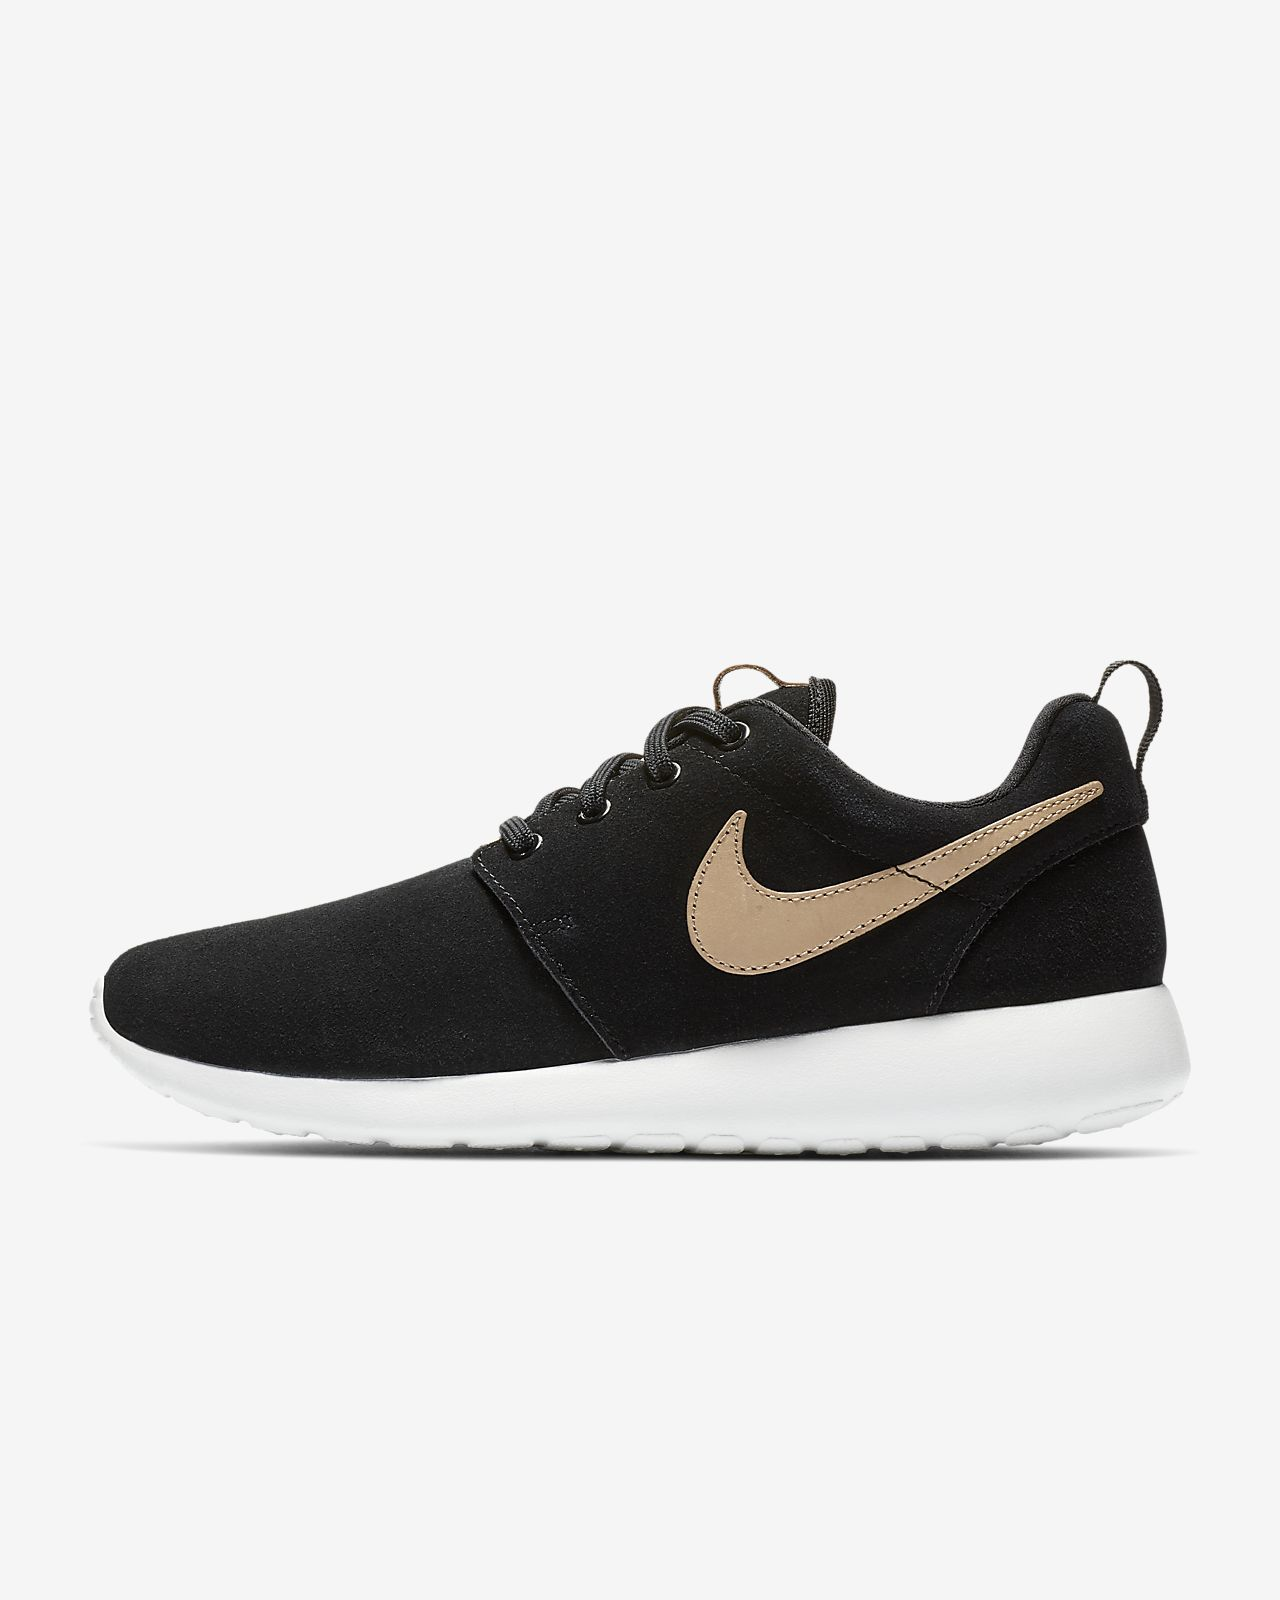 huge discount 5ba77 afd70 ... Nike Roshe One Premium Women s Shoe